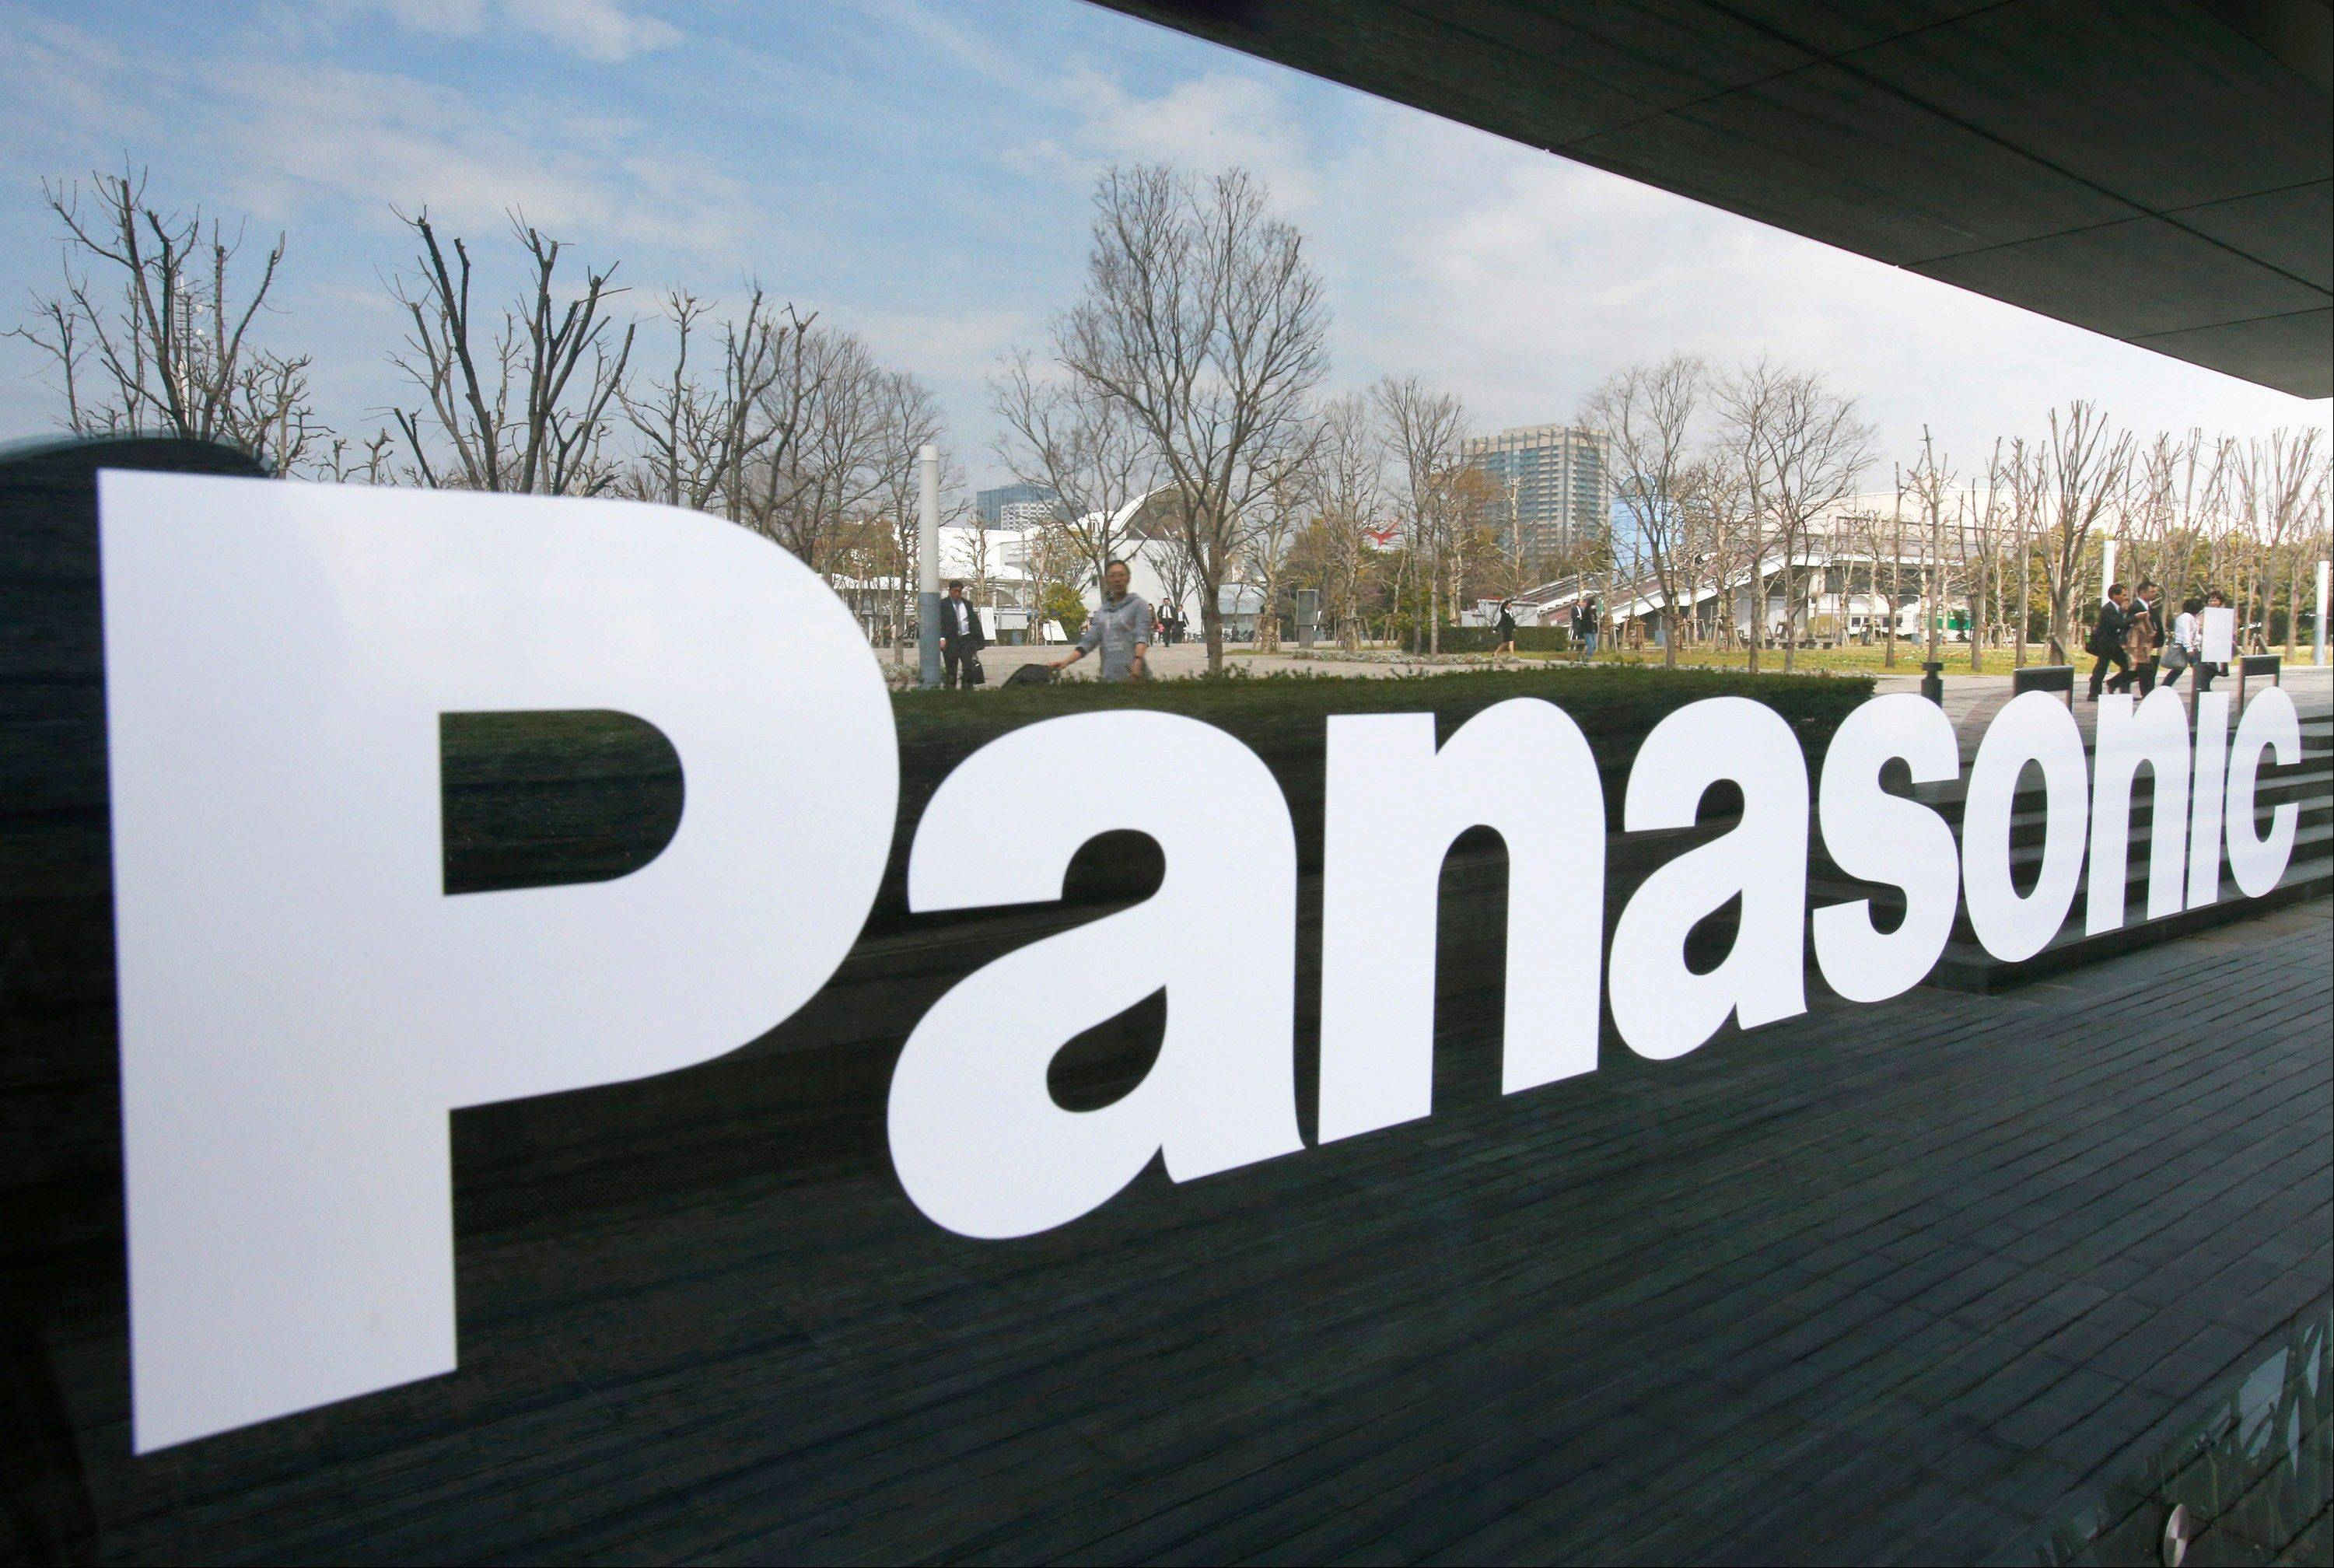 Panasonic�s president said this week the company will persist with trying to fix its money-losing TV business, characterizing an exit from the fiercely competitive industry as a �final resort.�